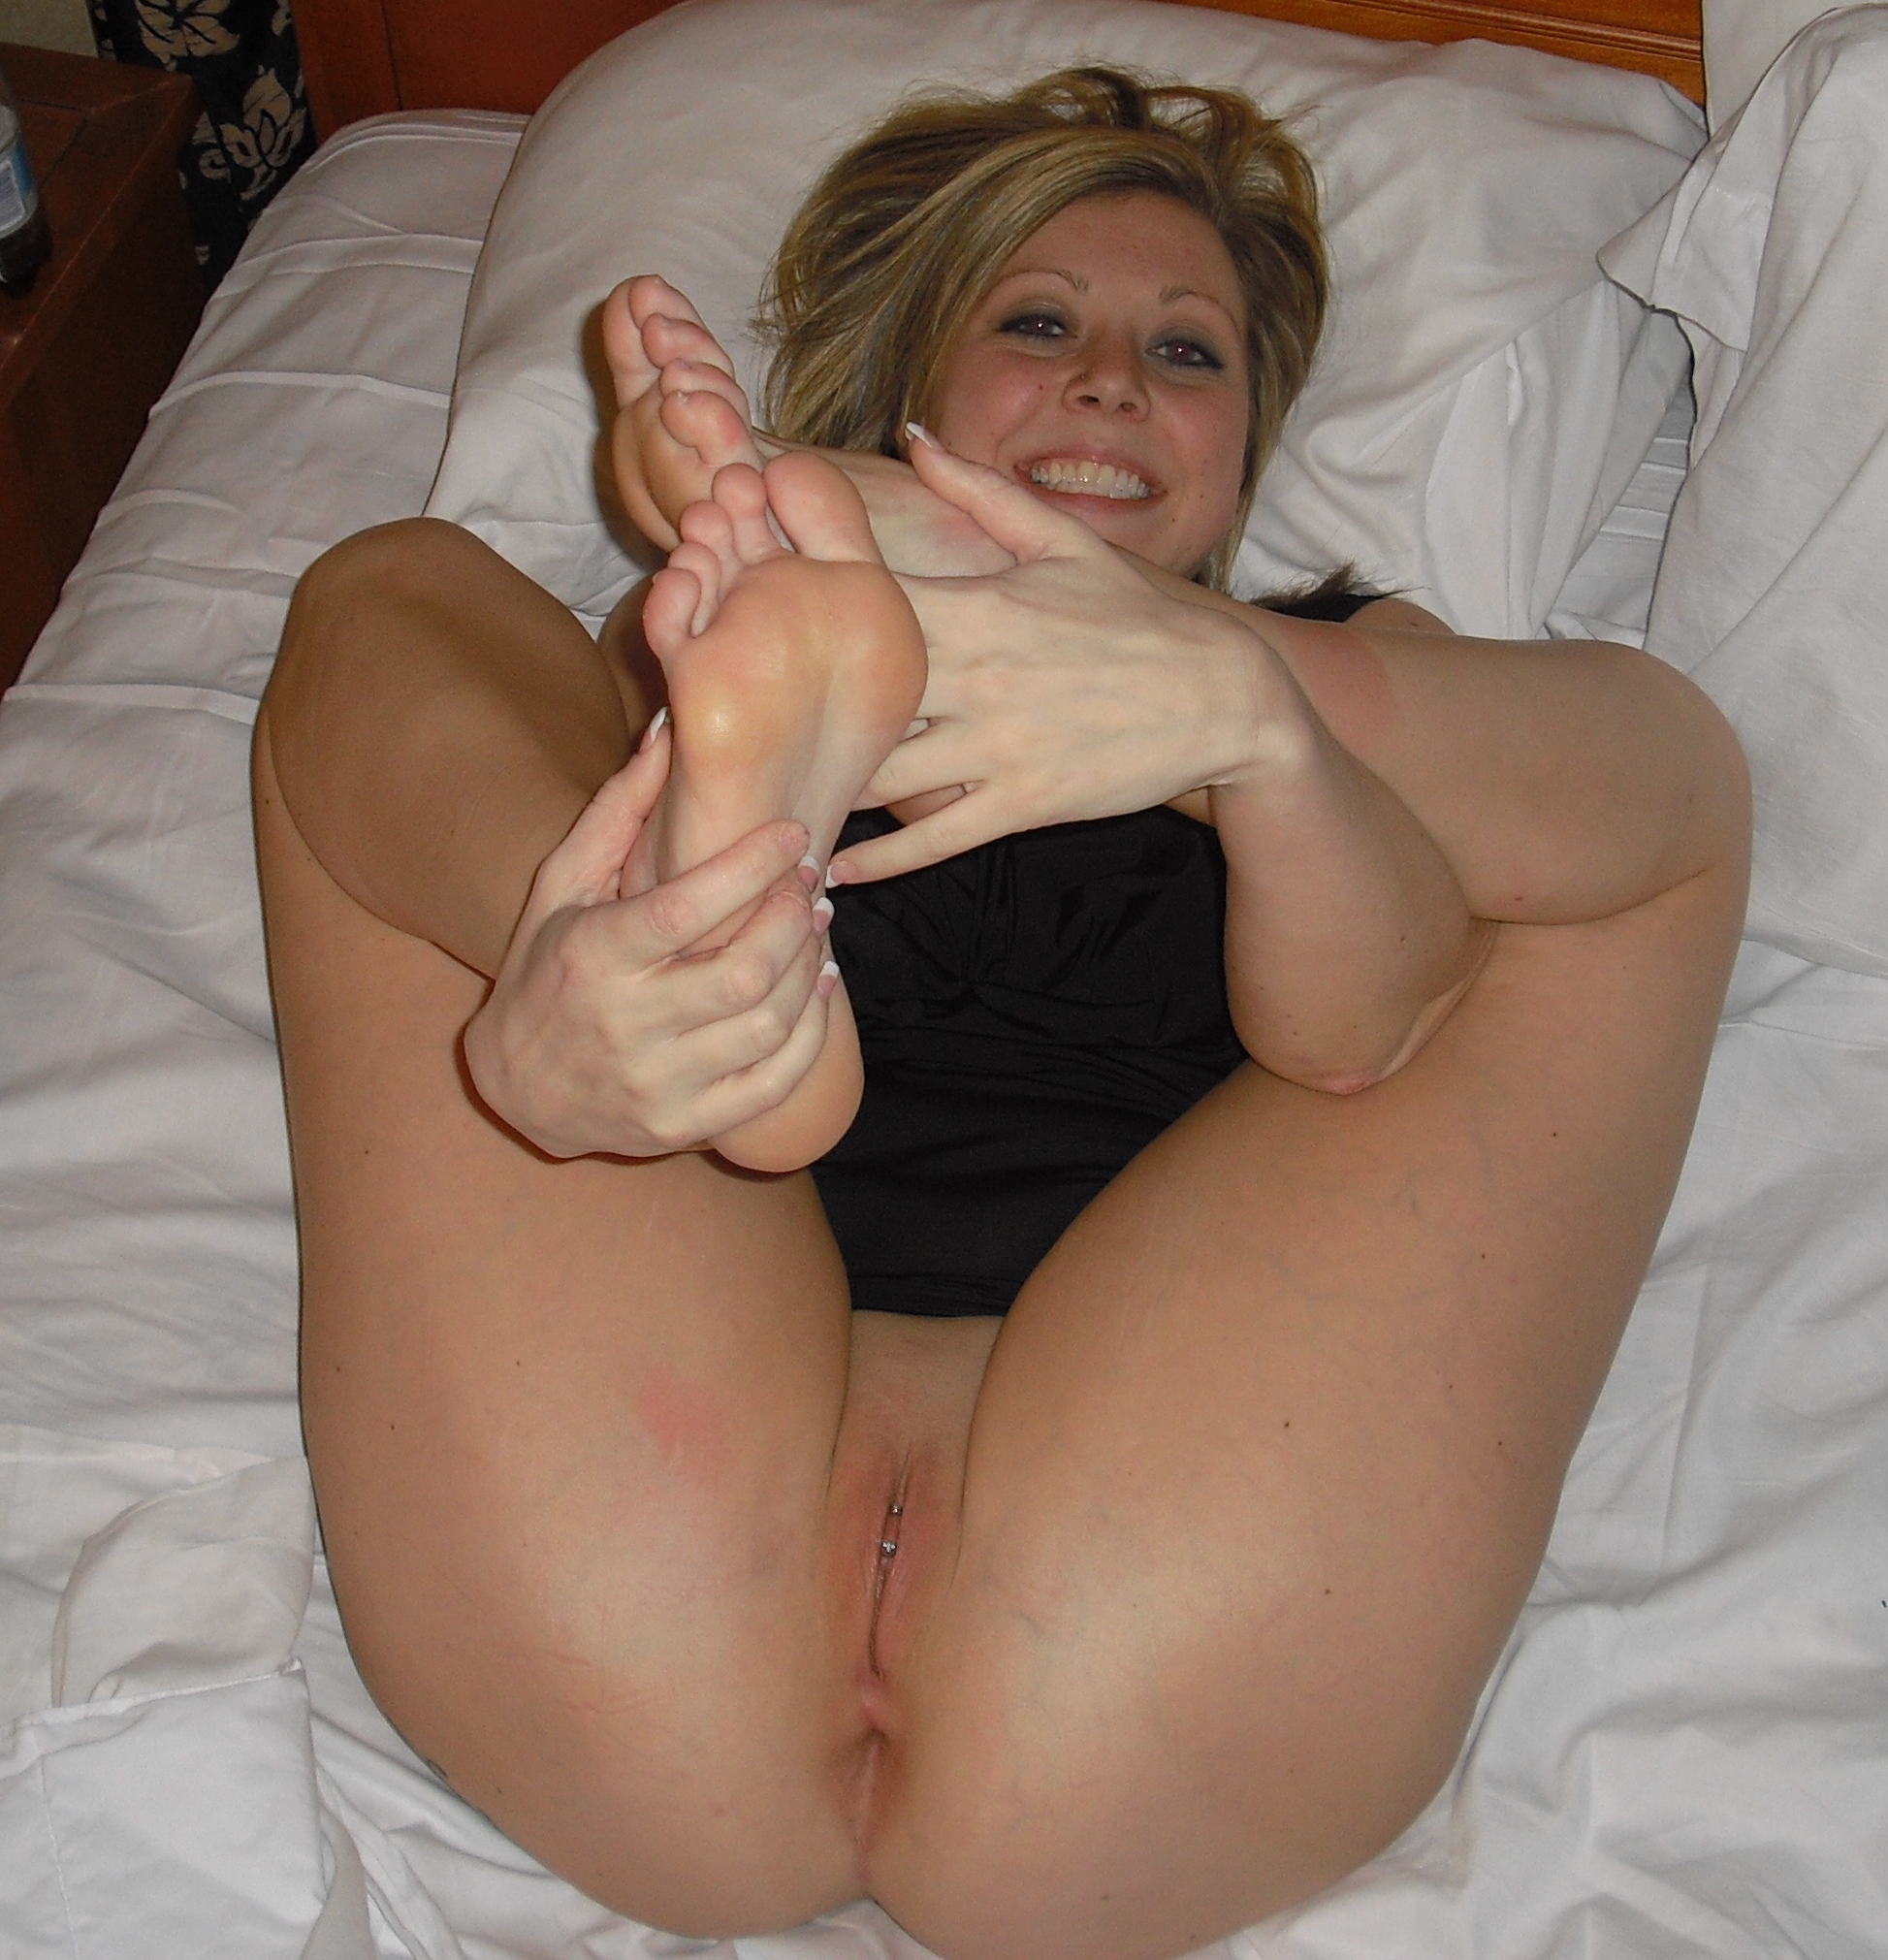 Hot amateur wife barefoot and naked